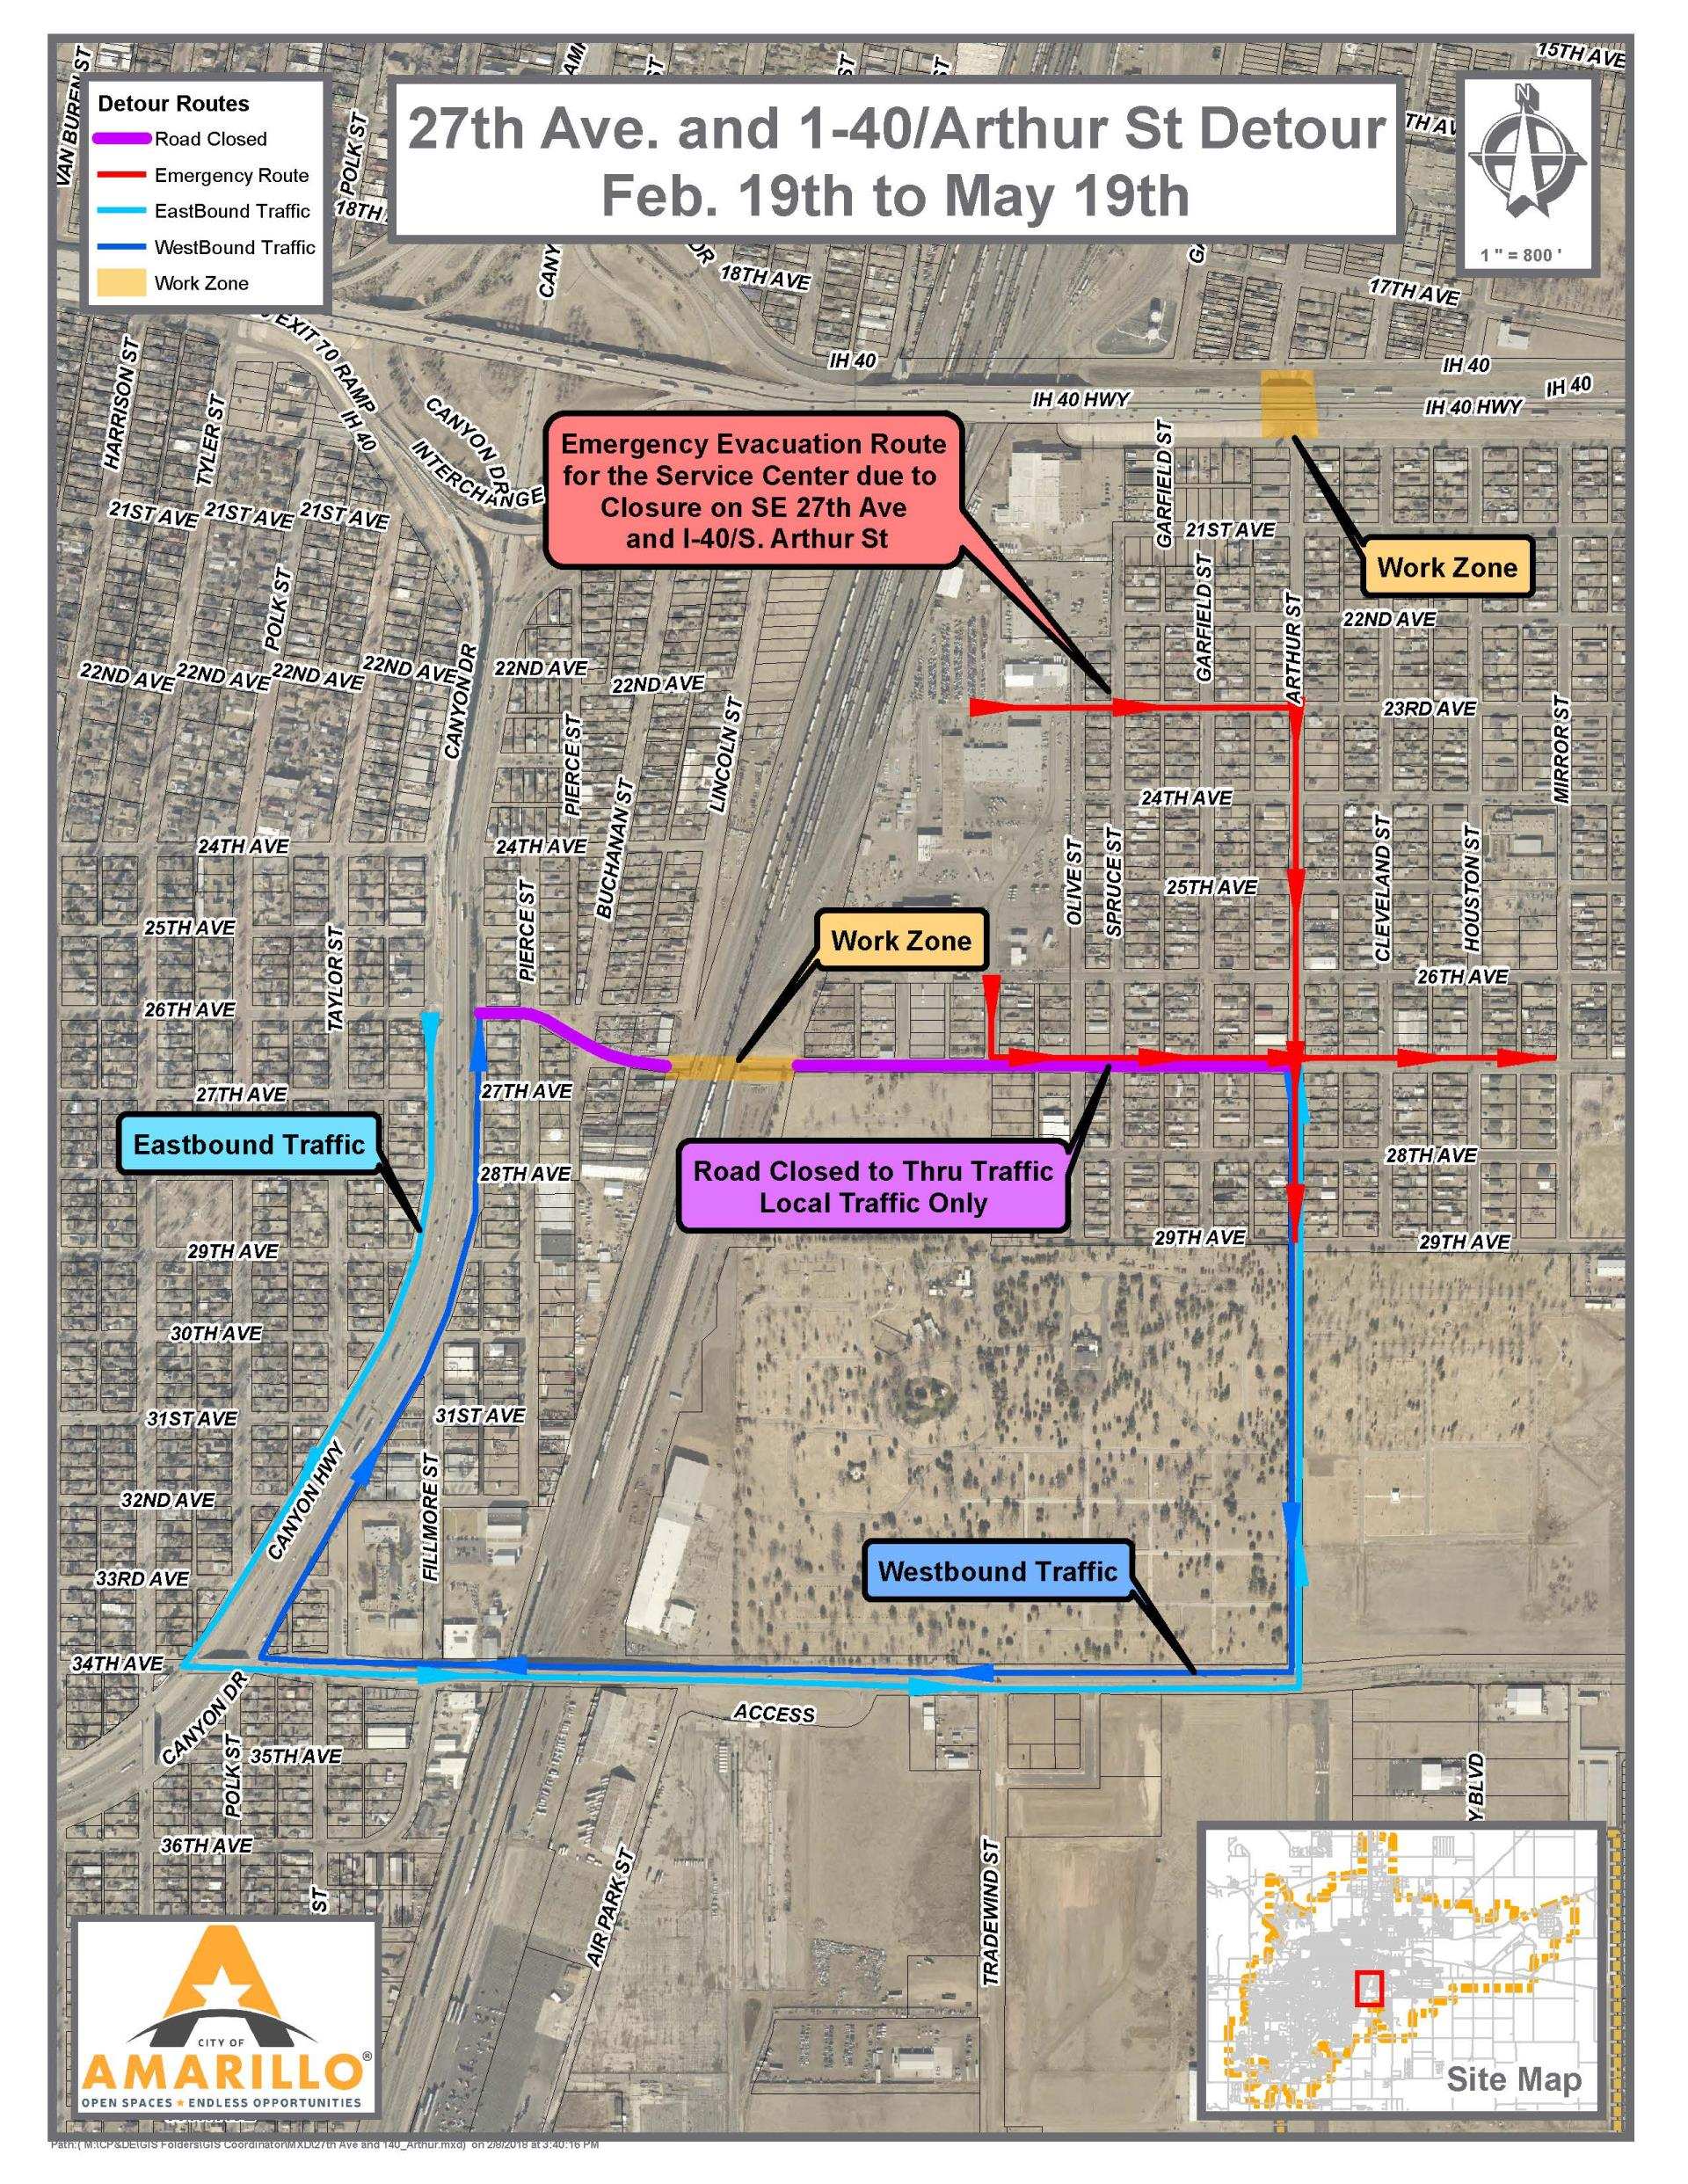 BNSF Closes S.E. 27th Avenue for Bridge Construction